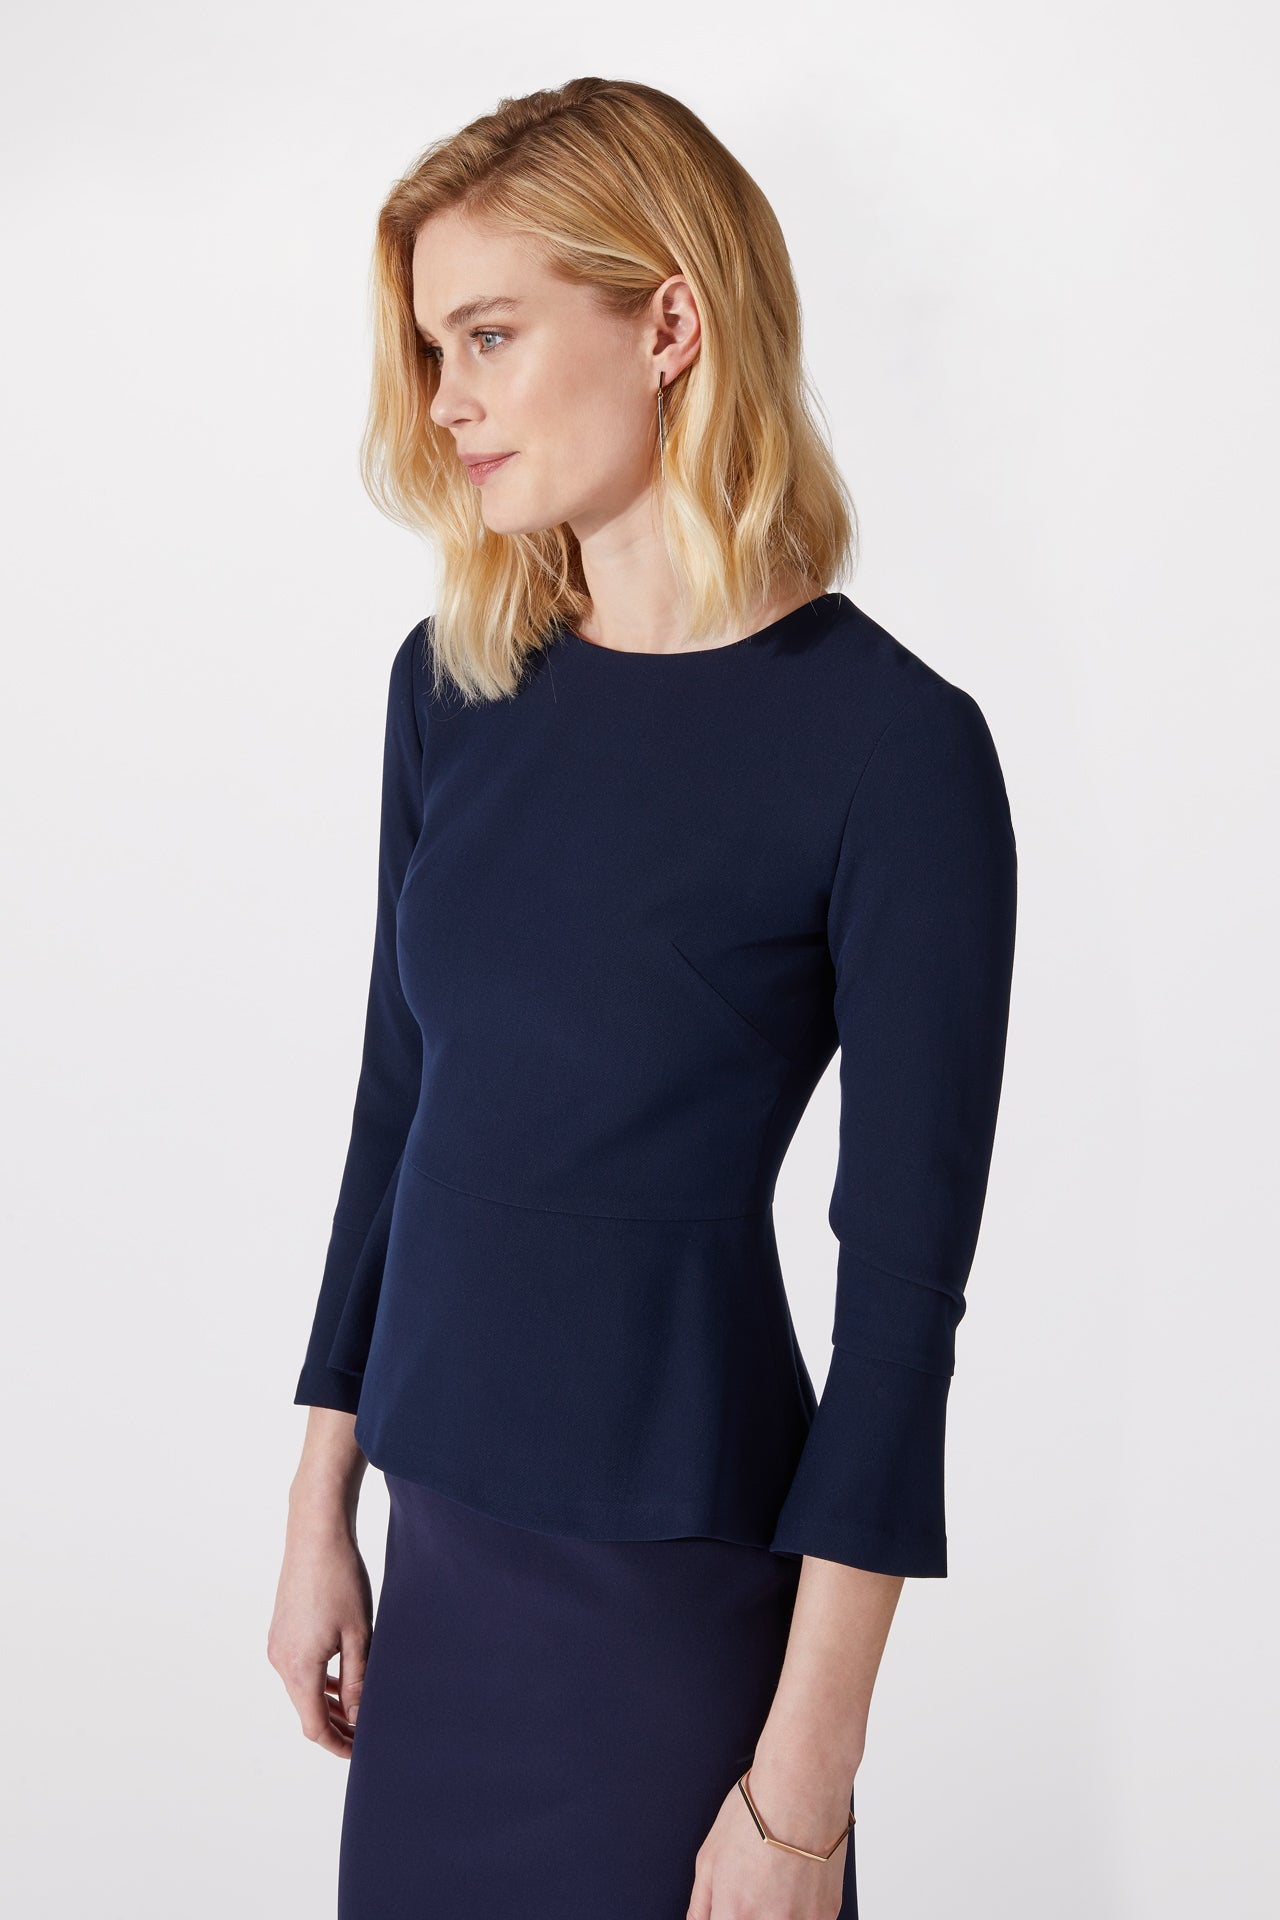 Chartwell Dark Navy